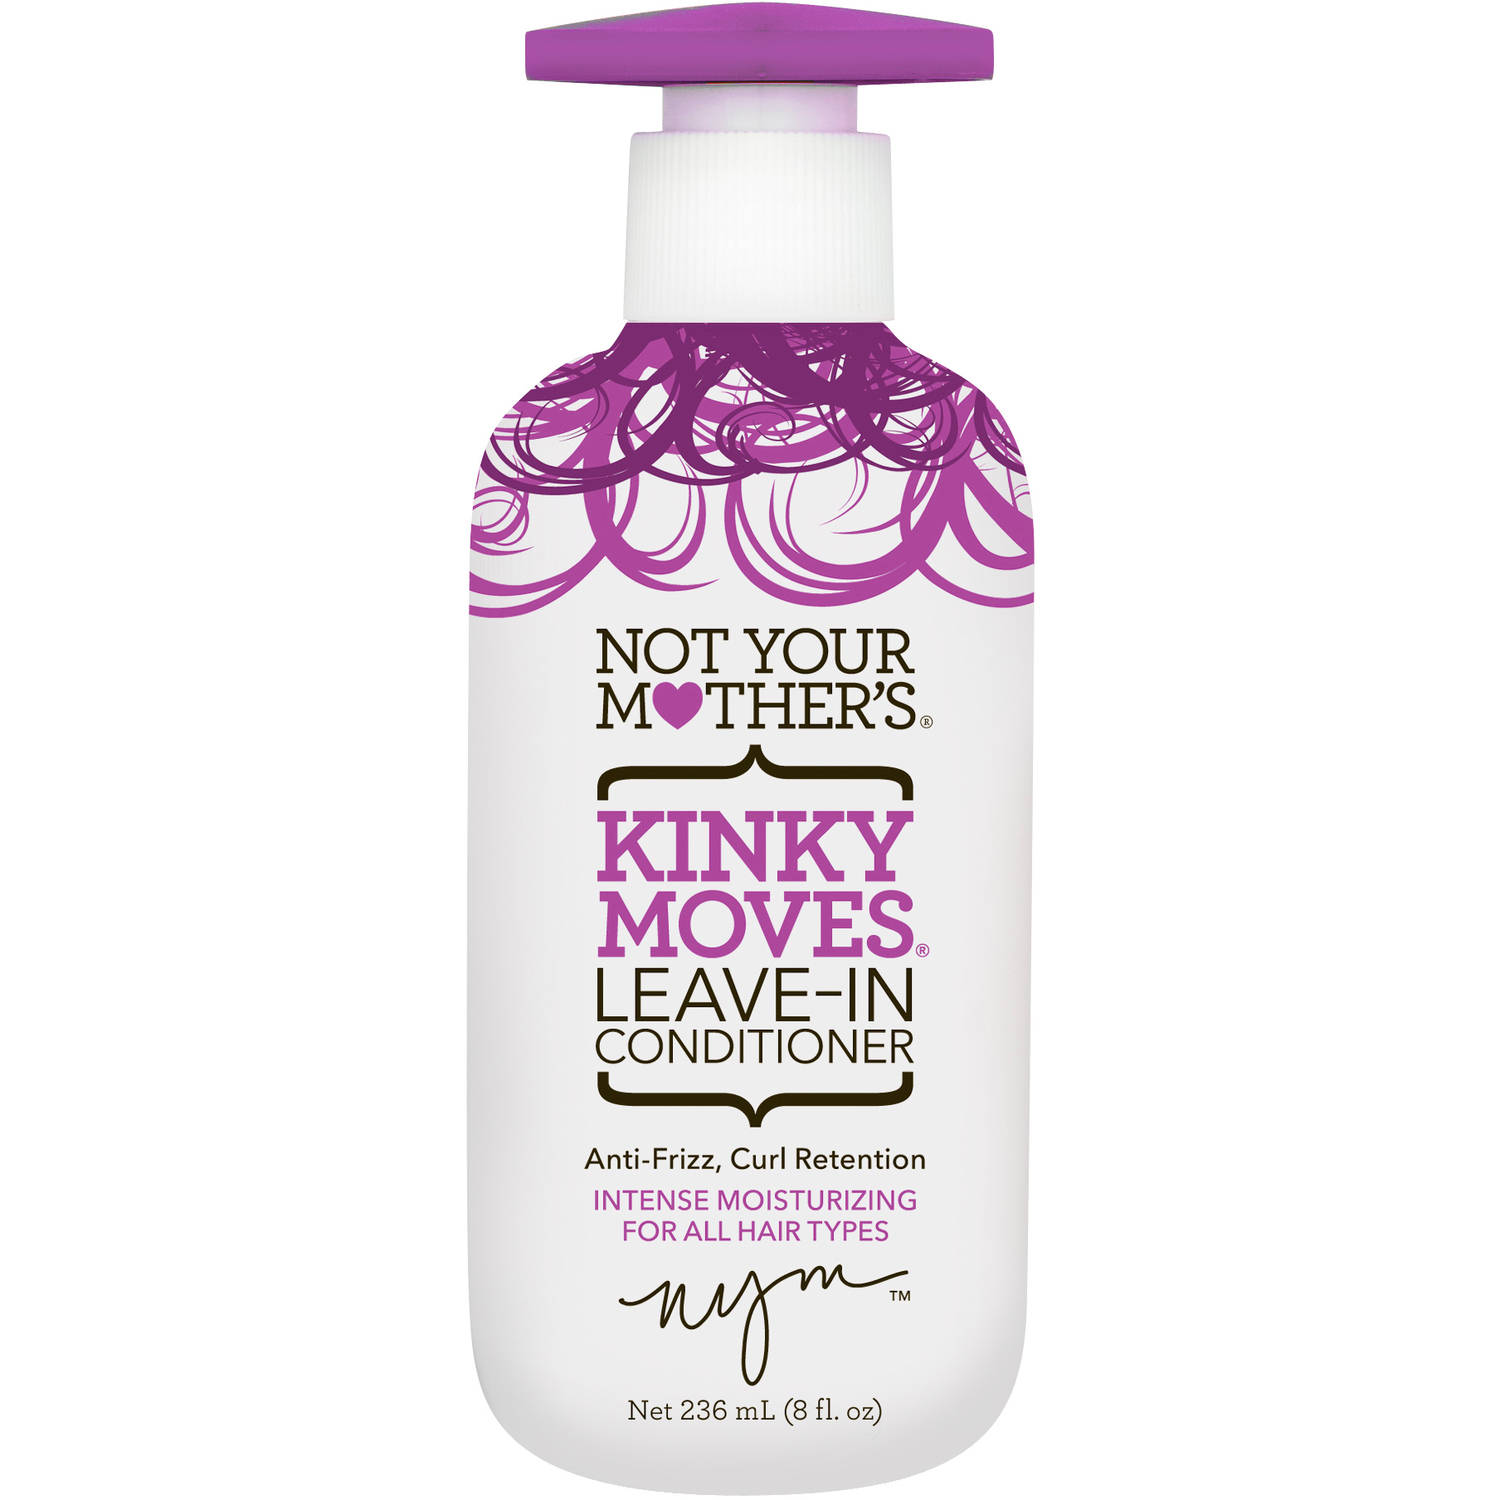 Not Your Mother's Kinky Moves Leave-in Conditioner, 8 oz